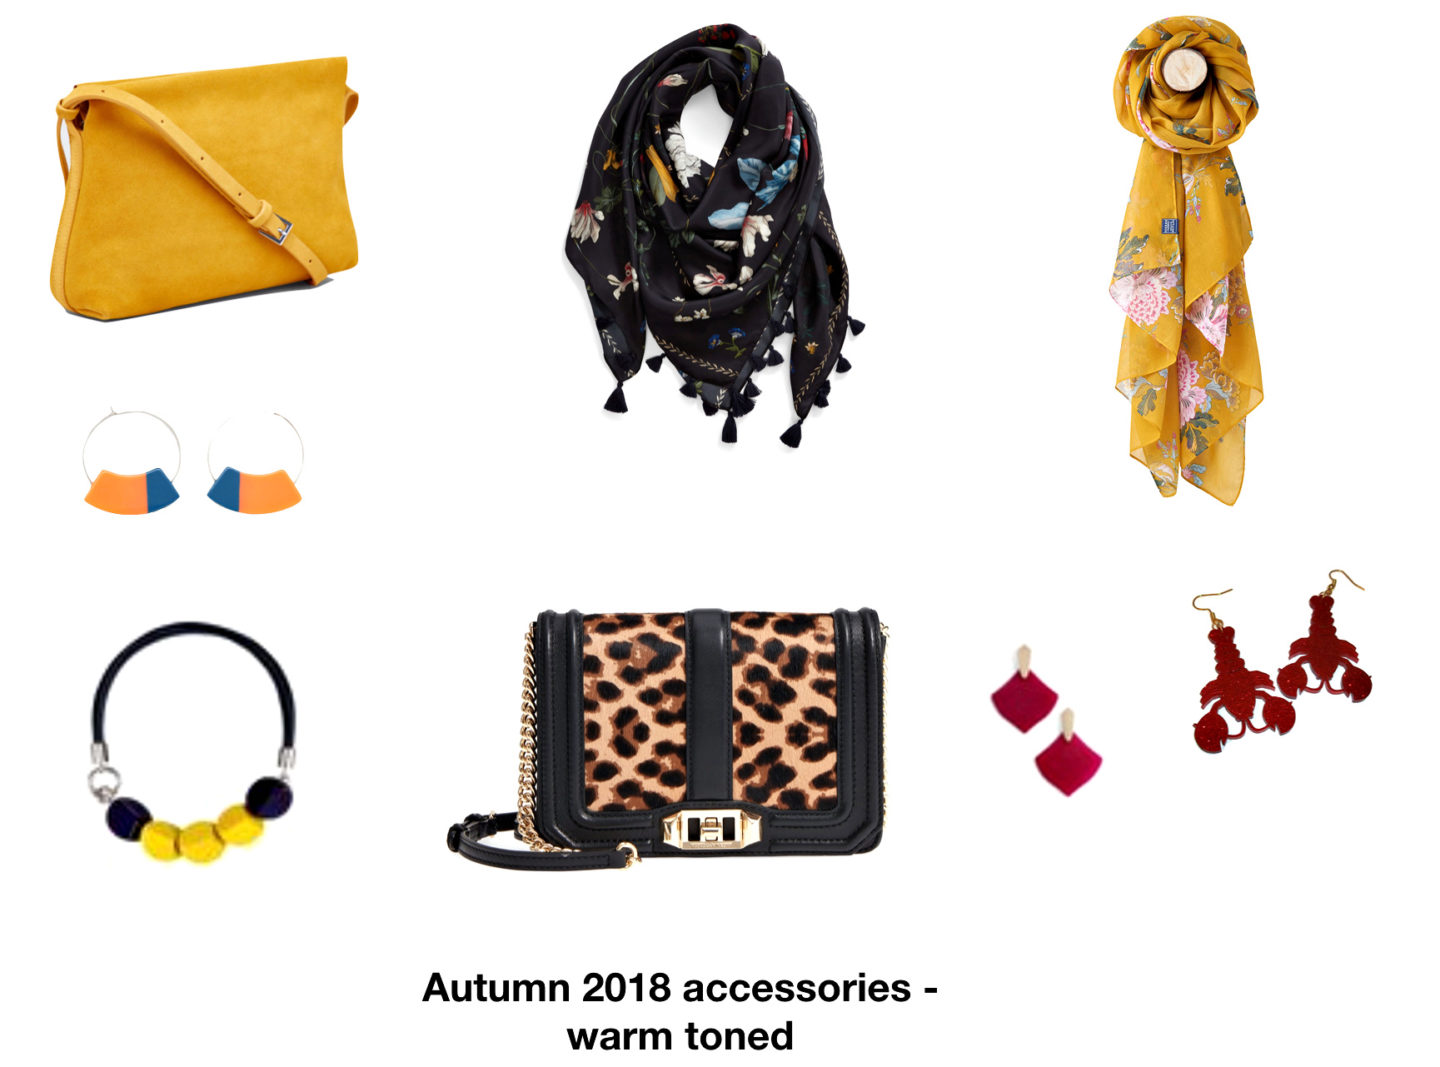 How to harness the power of accessories